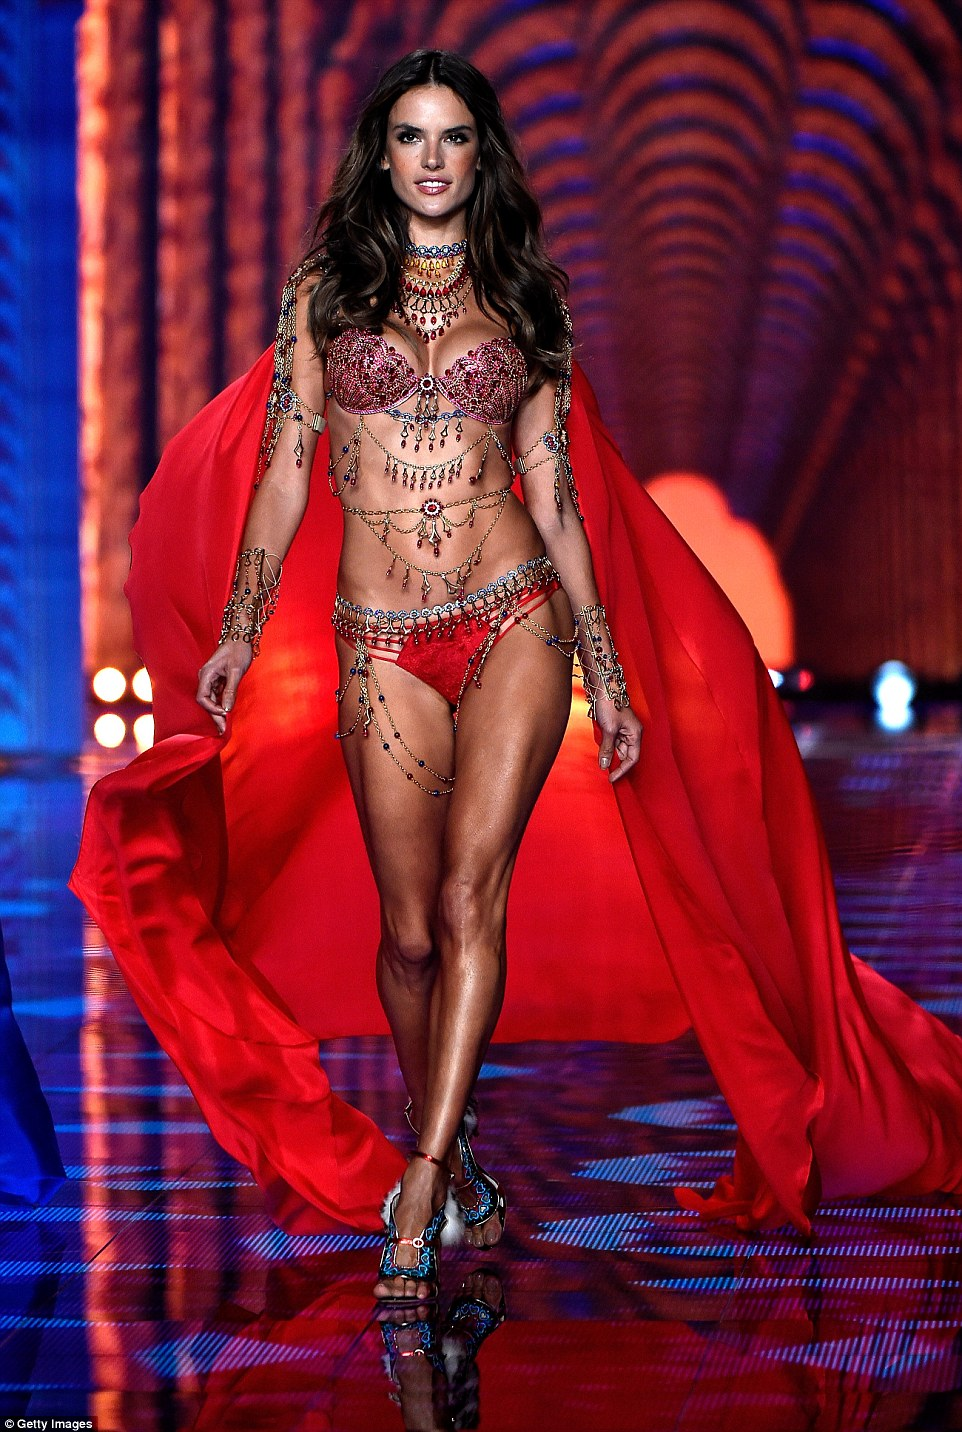 ed5d2ac5e3 Brazilian goddess Alessandra Ambrosio floats her Angel Cape sans wings as  she models one of two Fantasy bras ...